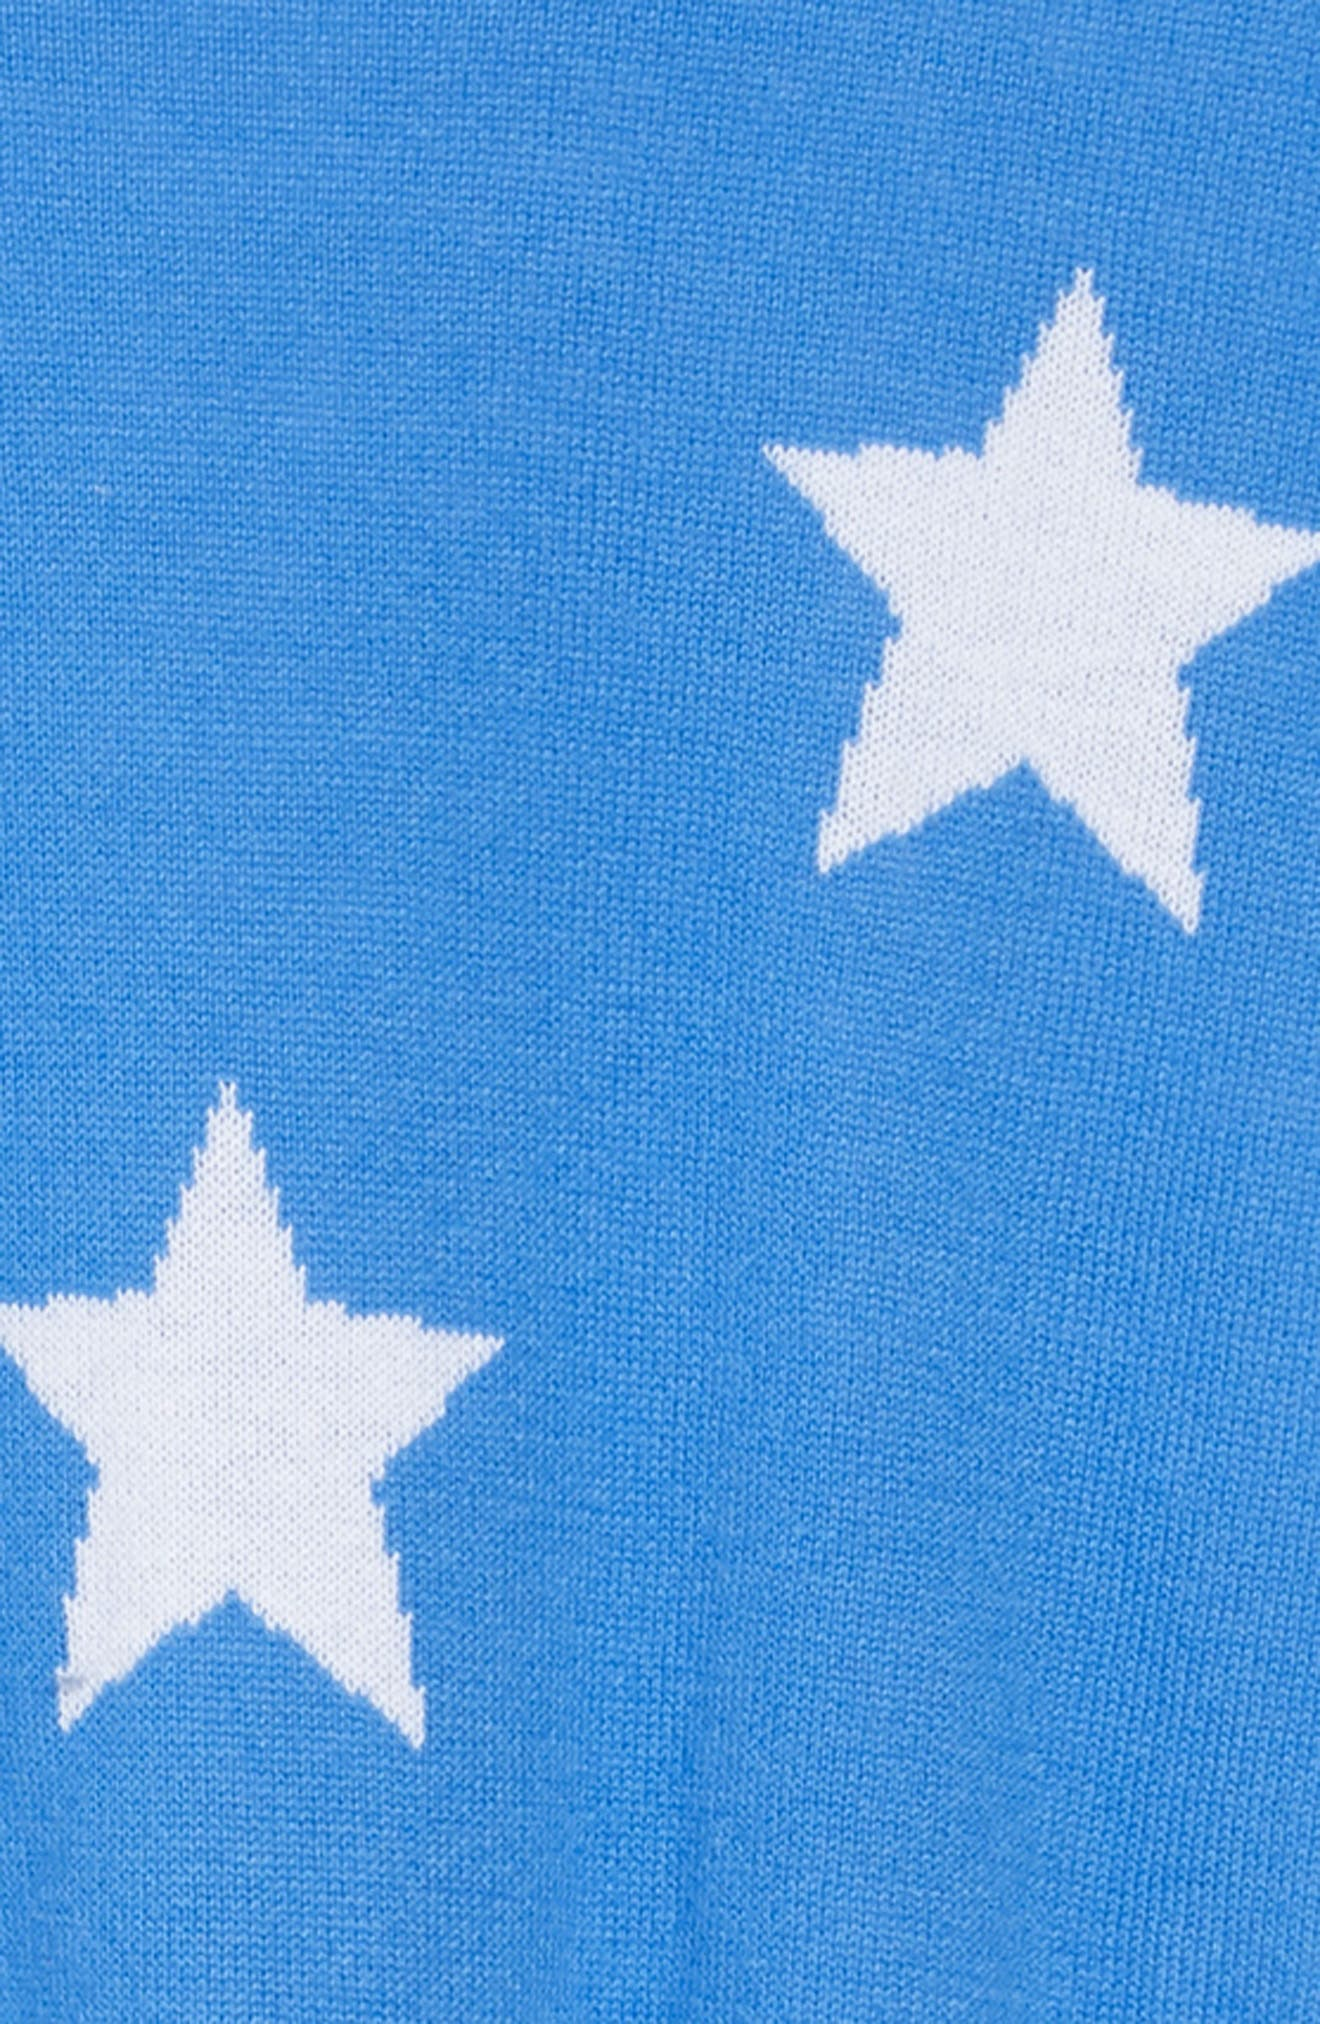 Swingy Sweater Dress,                             Alternate thumbnail 3, color,                             BLUE CAMP STARS